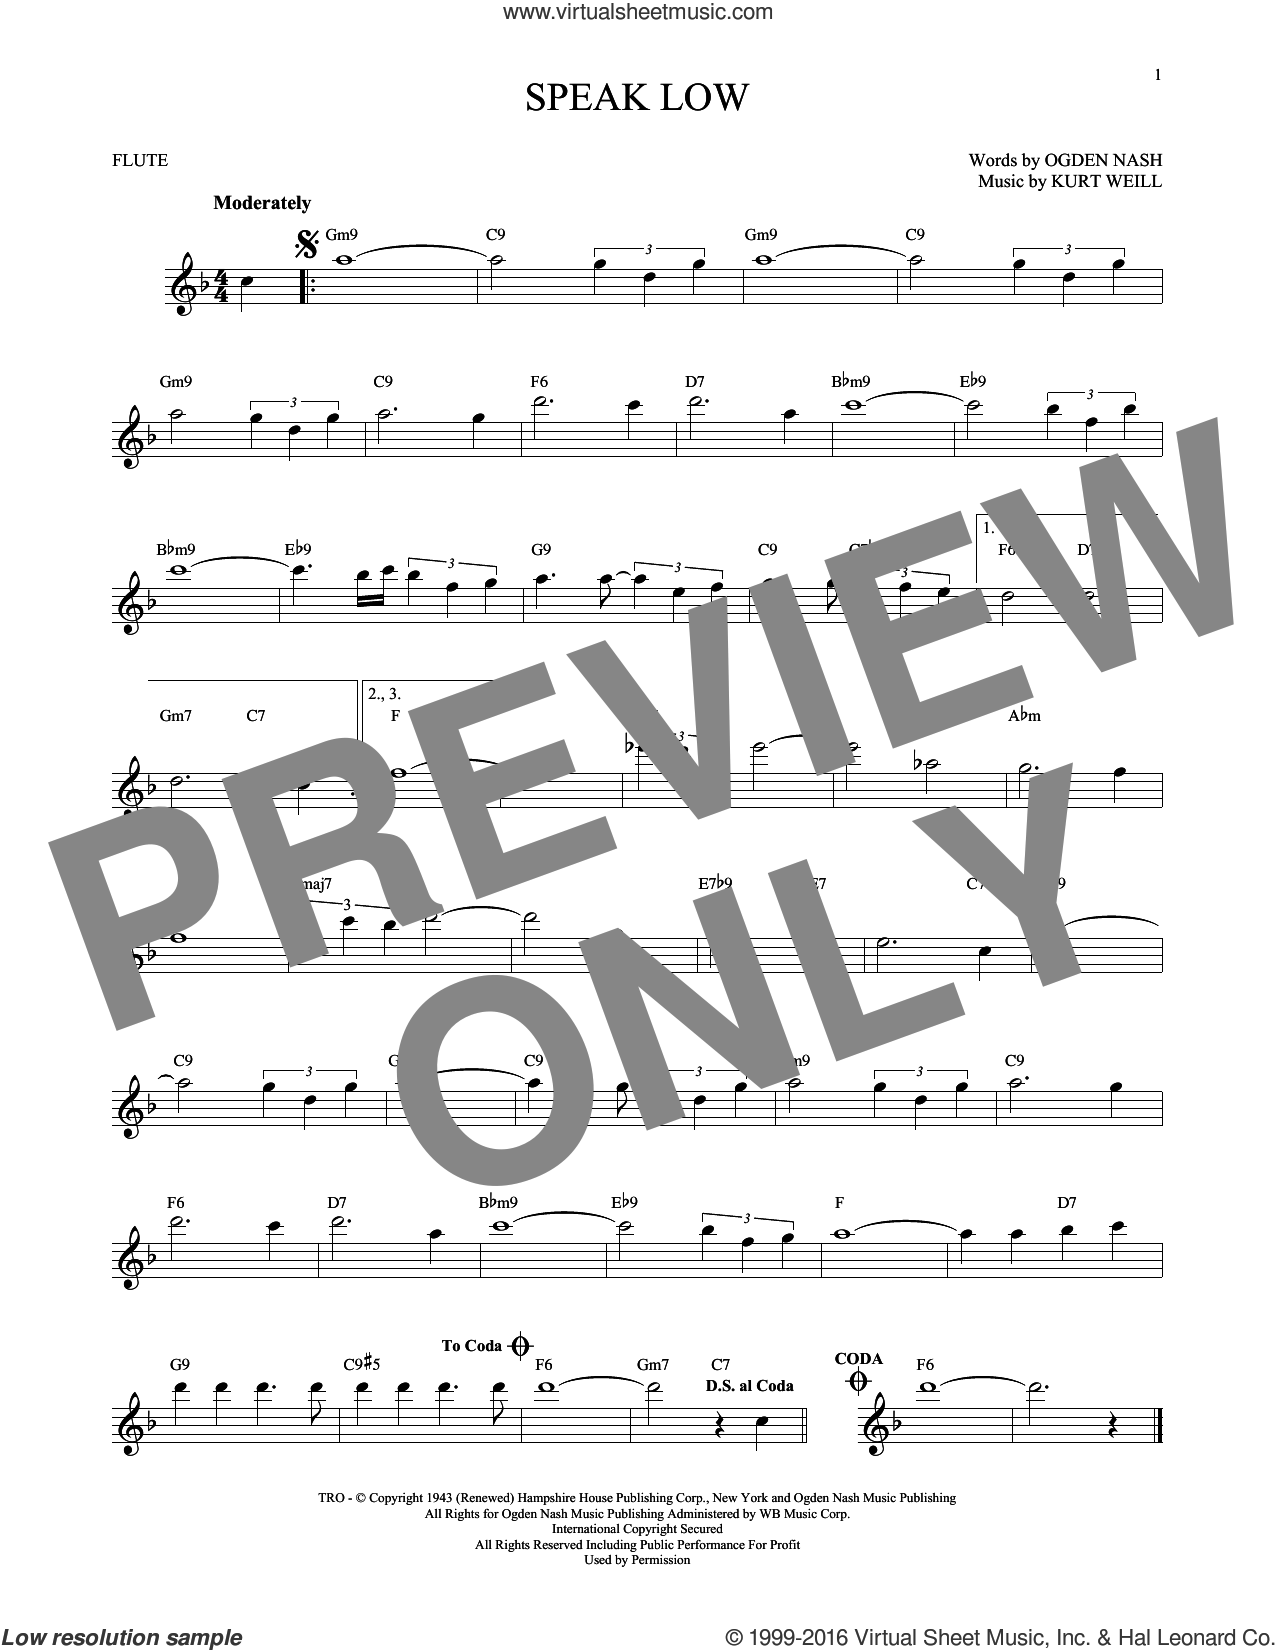 Speak Low sheet music for flute solo by Kurt Weill and Ogden Nash, intermediate